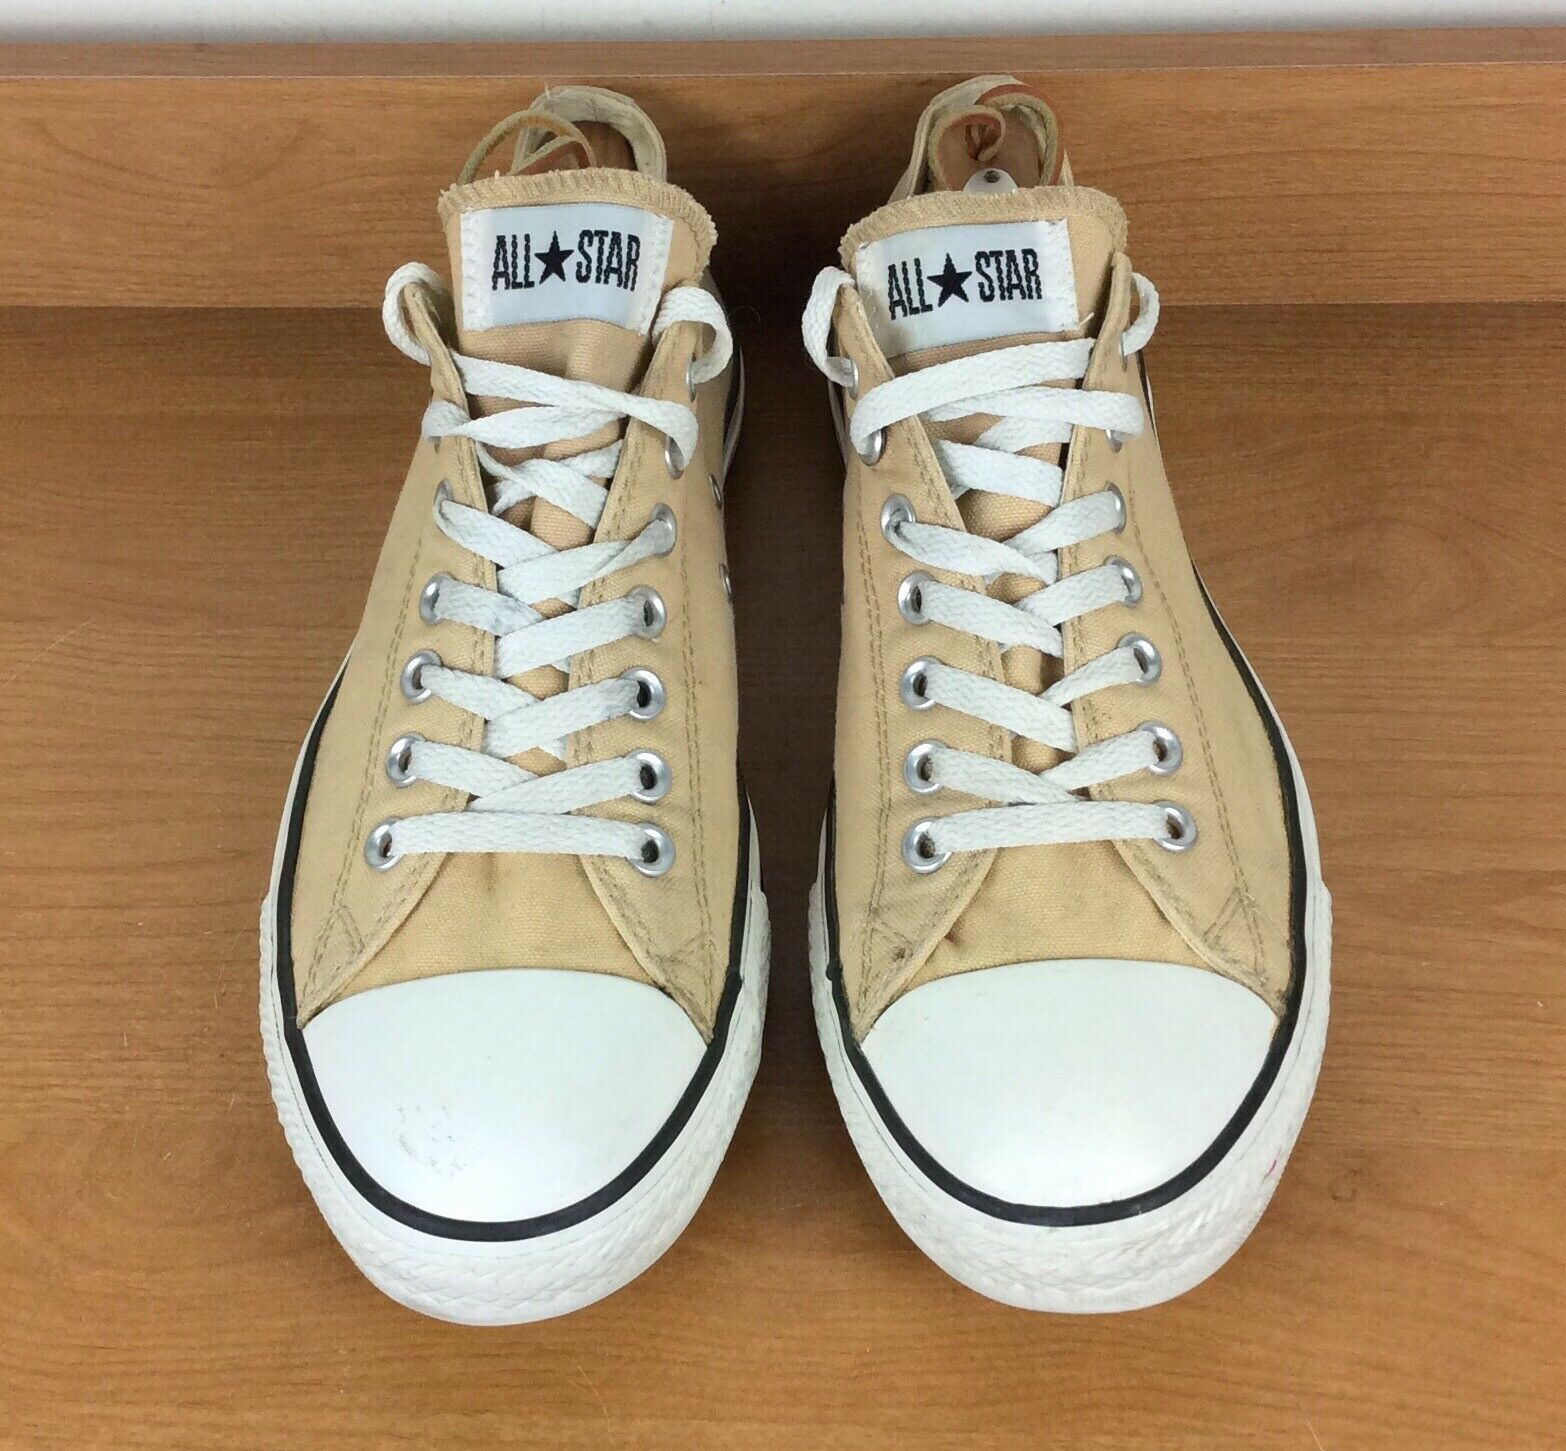 lace up in reputable site recognized brands Converse All Star, Men's Sz 11, Khaki Canvas Low Top Sneakers ...